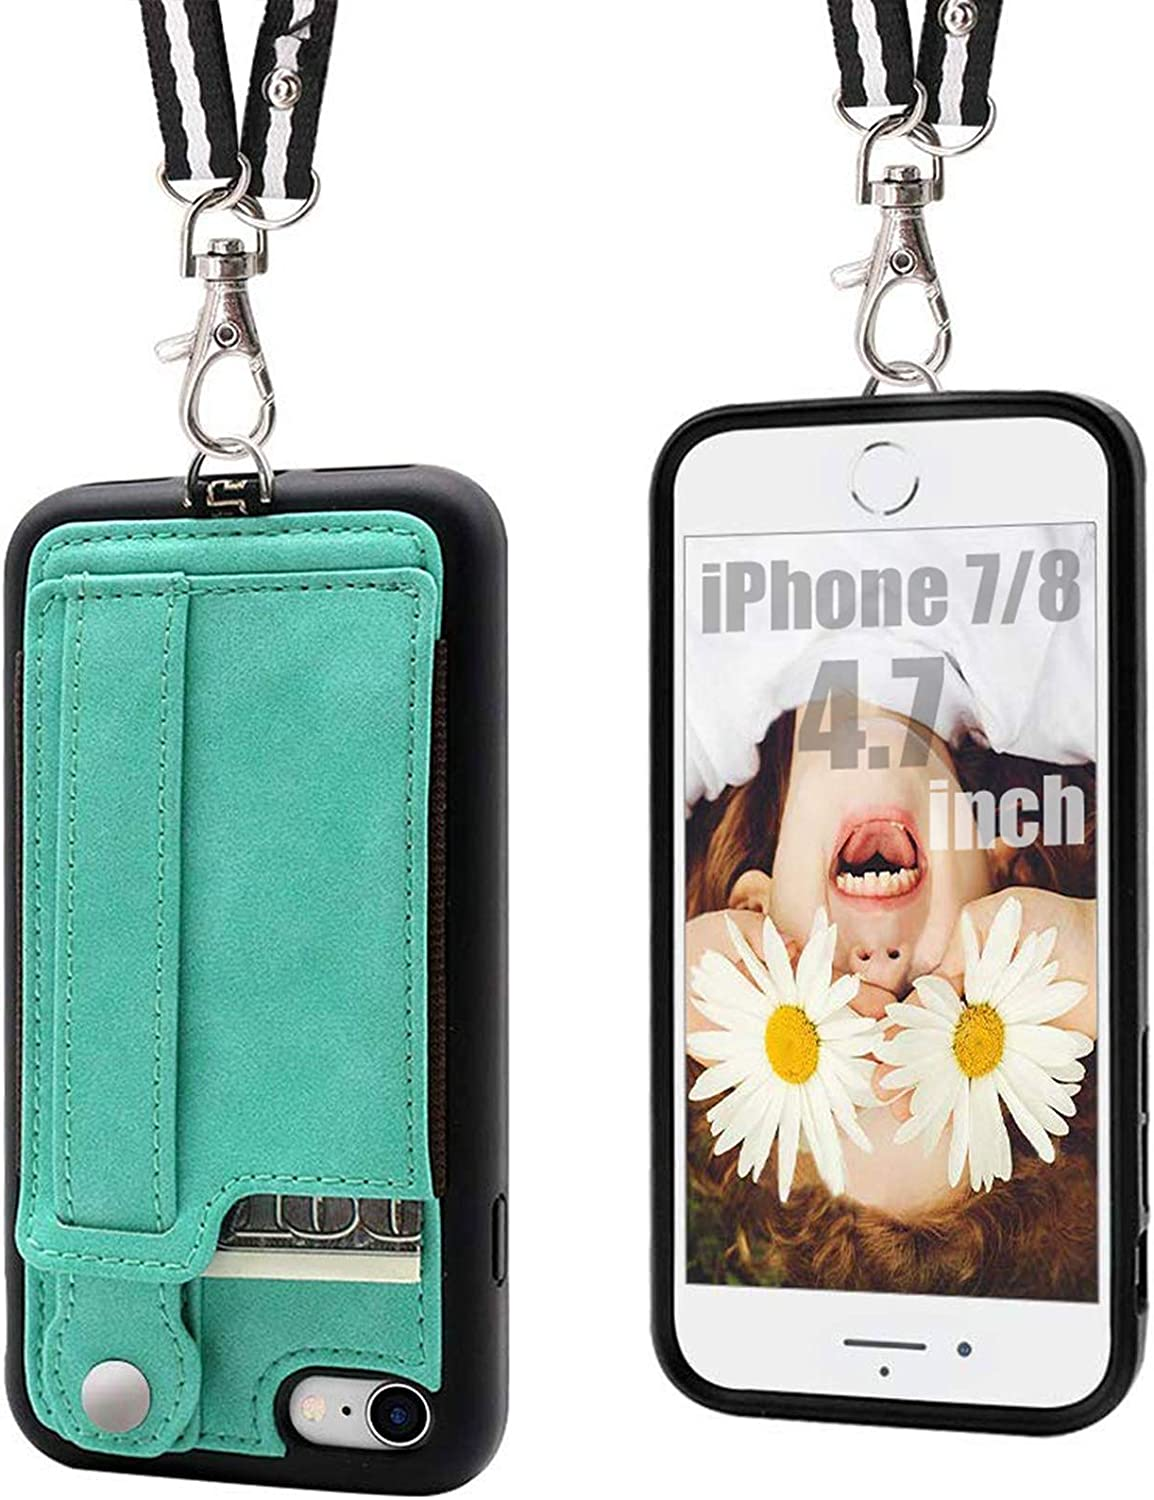 2ndSpring Crossbody Case Compatible with iPhone 5S 5 iPhone SE 2016,Clear TPU Shell with Neck Cord Lanyard Strap,Blue rainbow